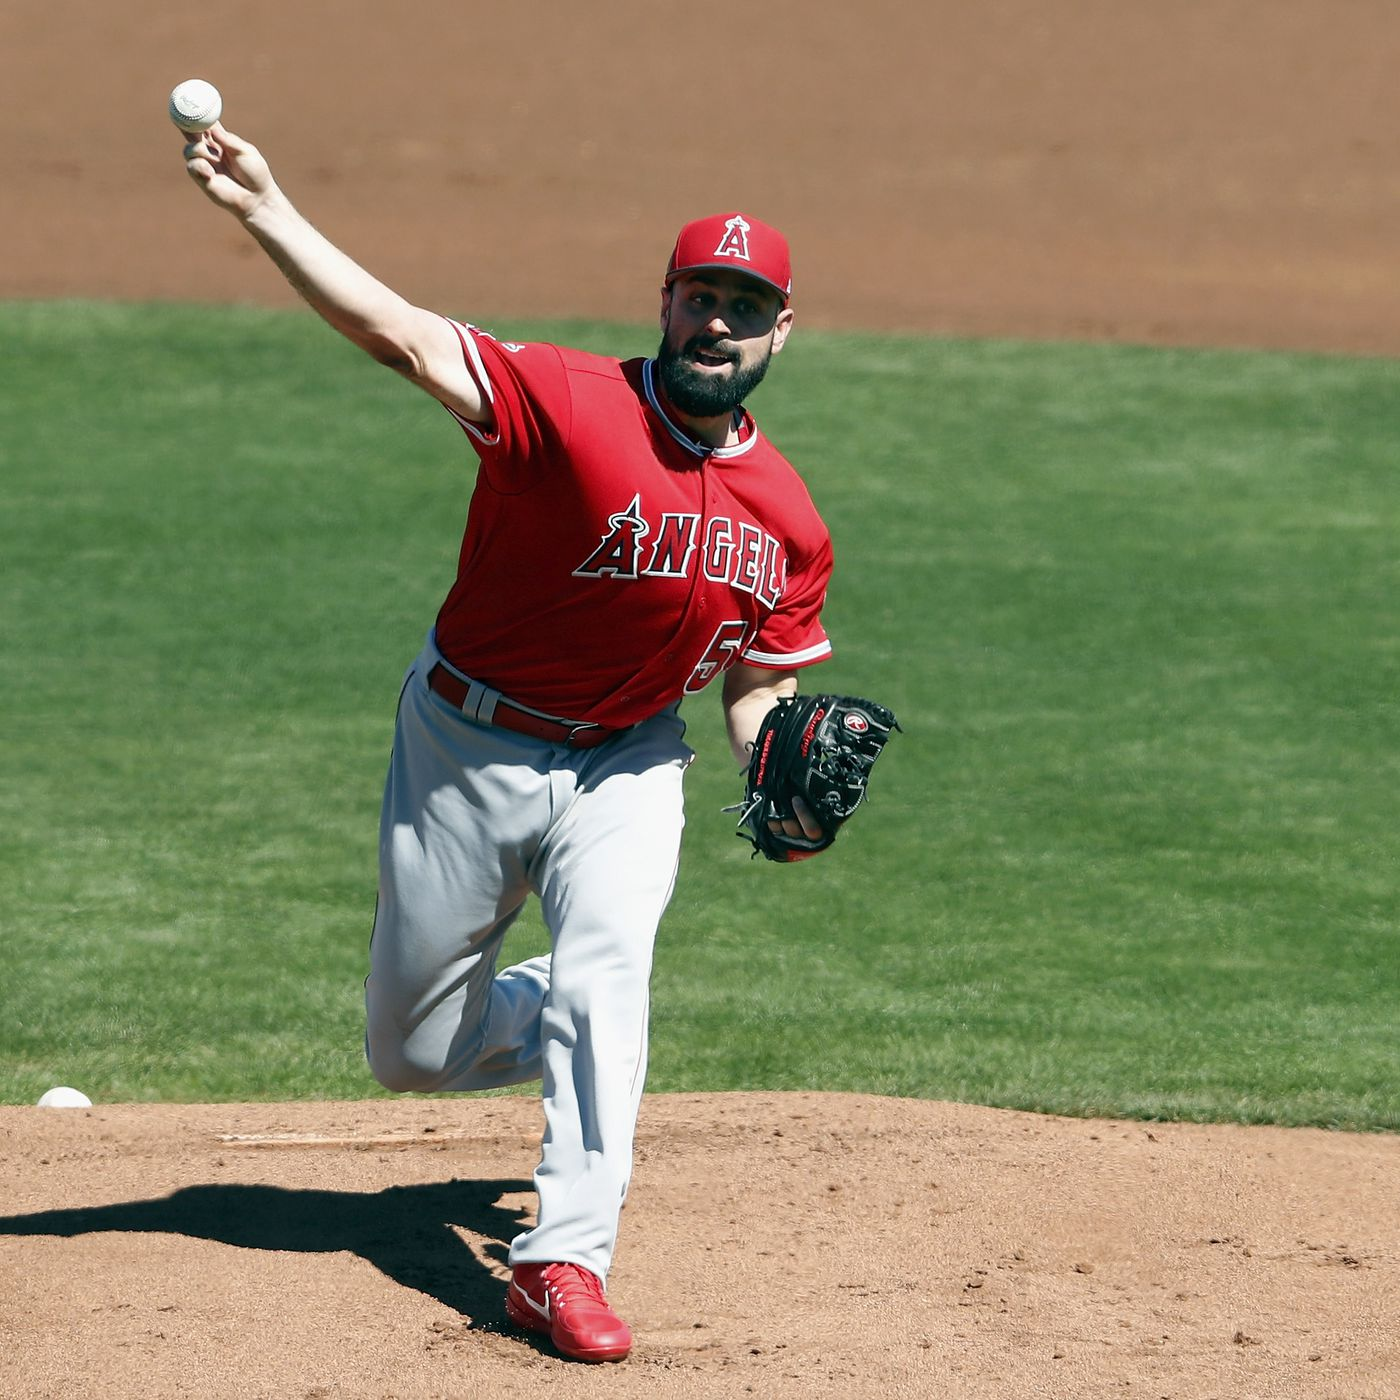 It's looking like Matt Shoemaker's going to be the Angels